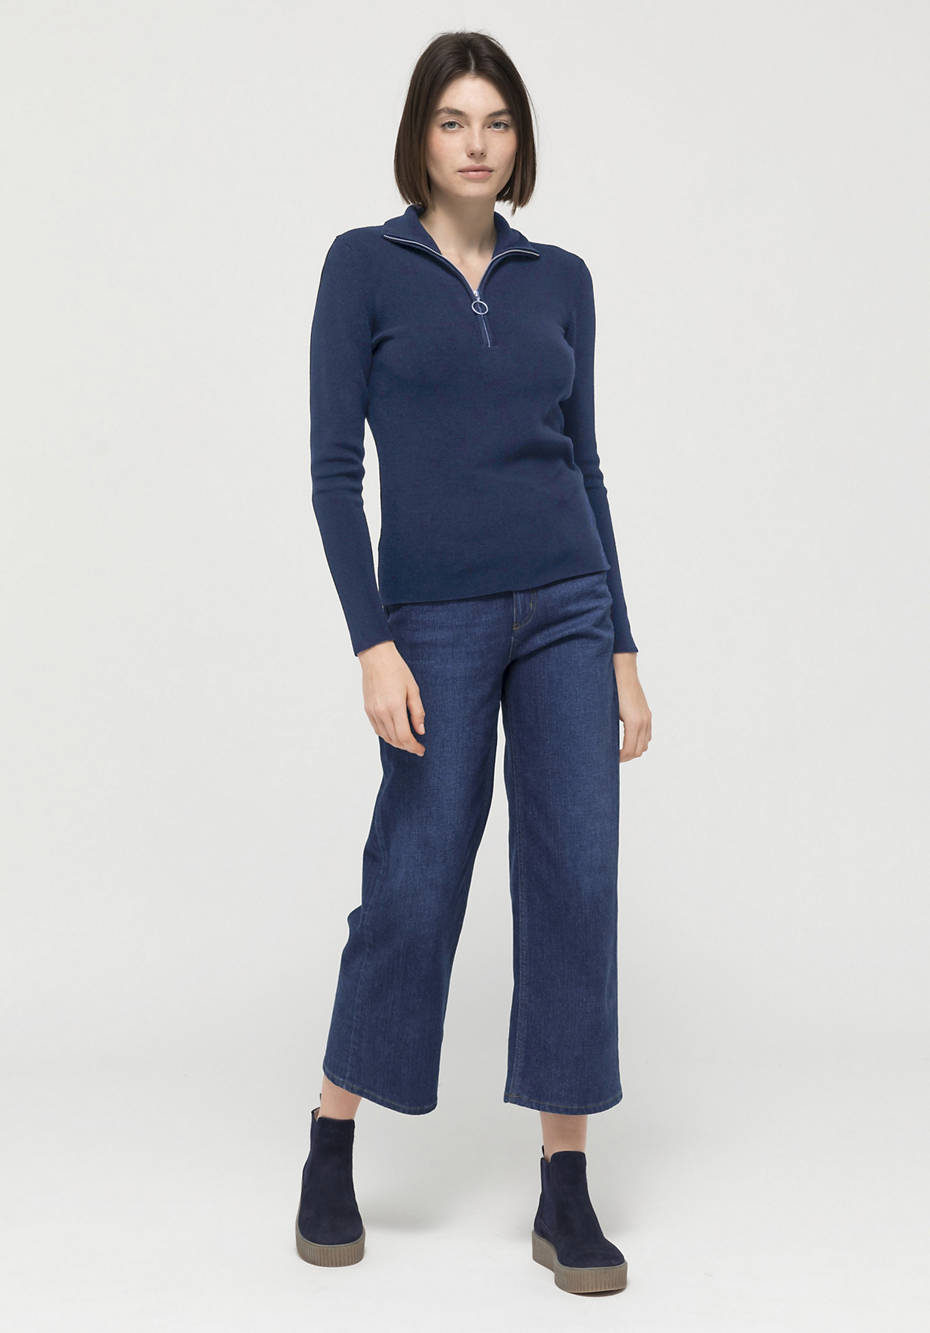 Sweater made of organic cotton and organic new wool